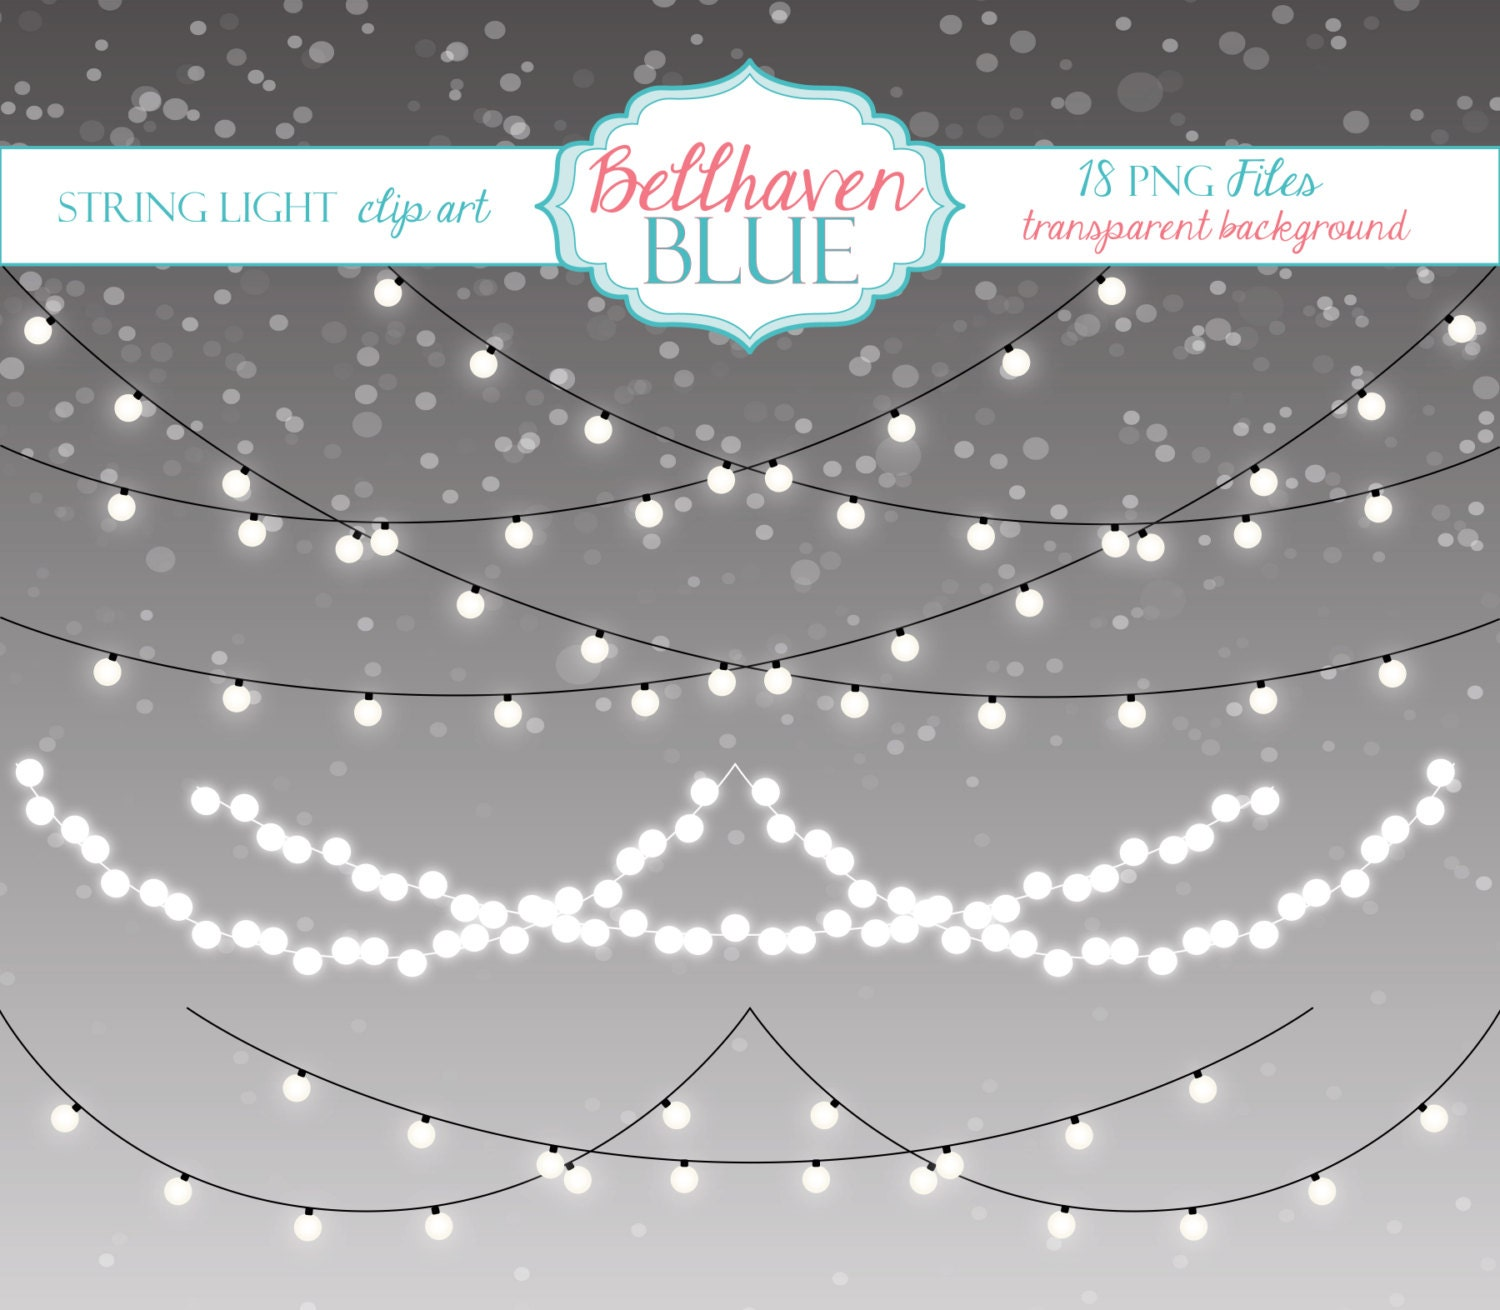 String Light Clip Art by BellhavenBlue on Etsy